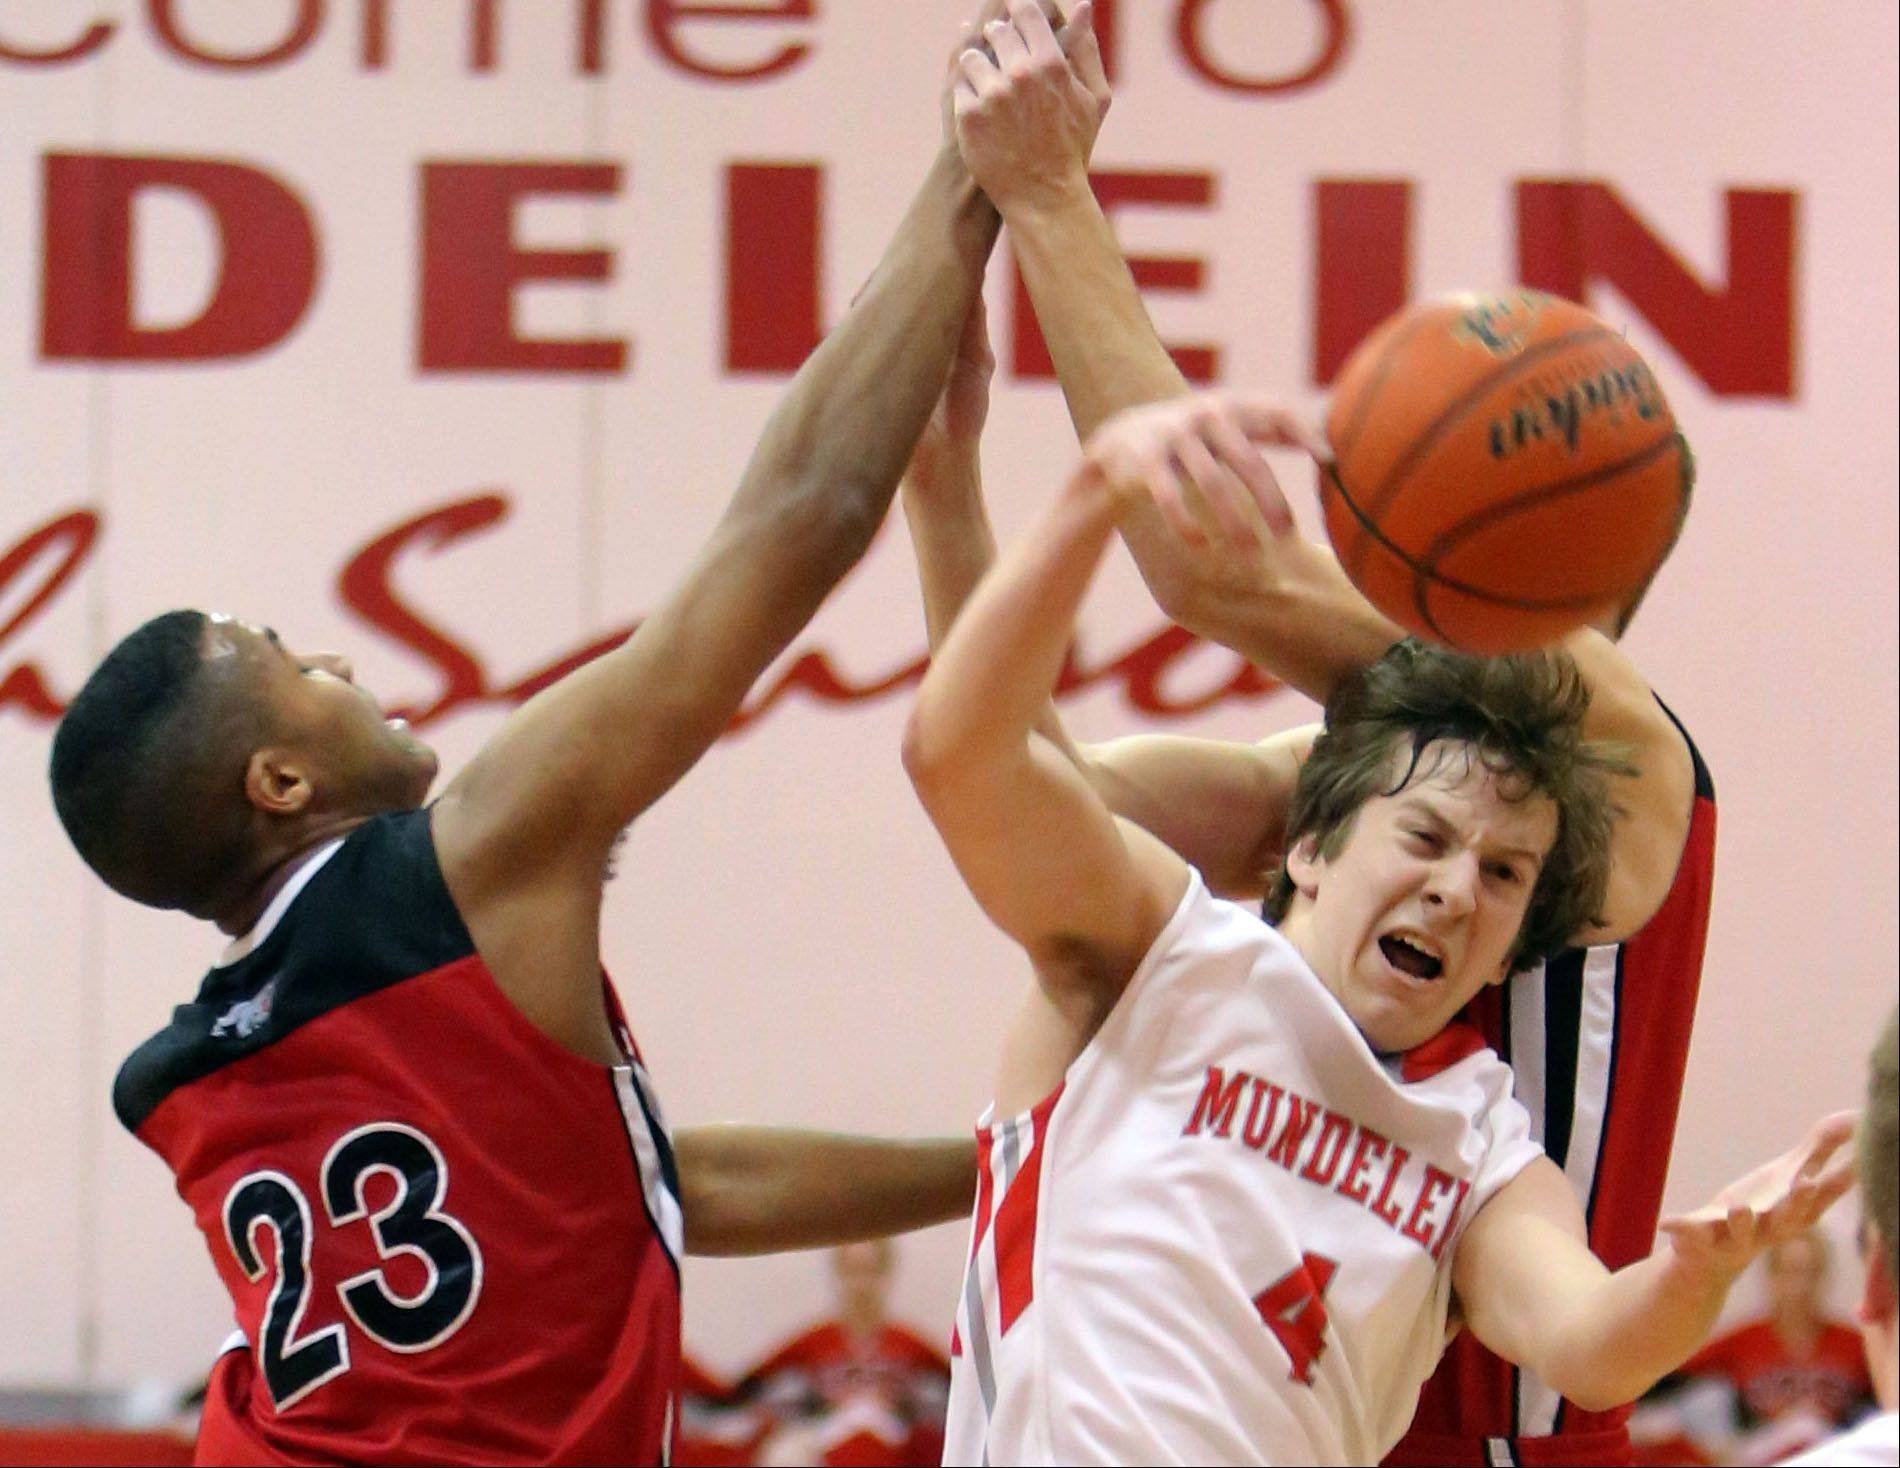 Images: Mundelein vs. Grant boys basketball